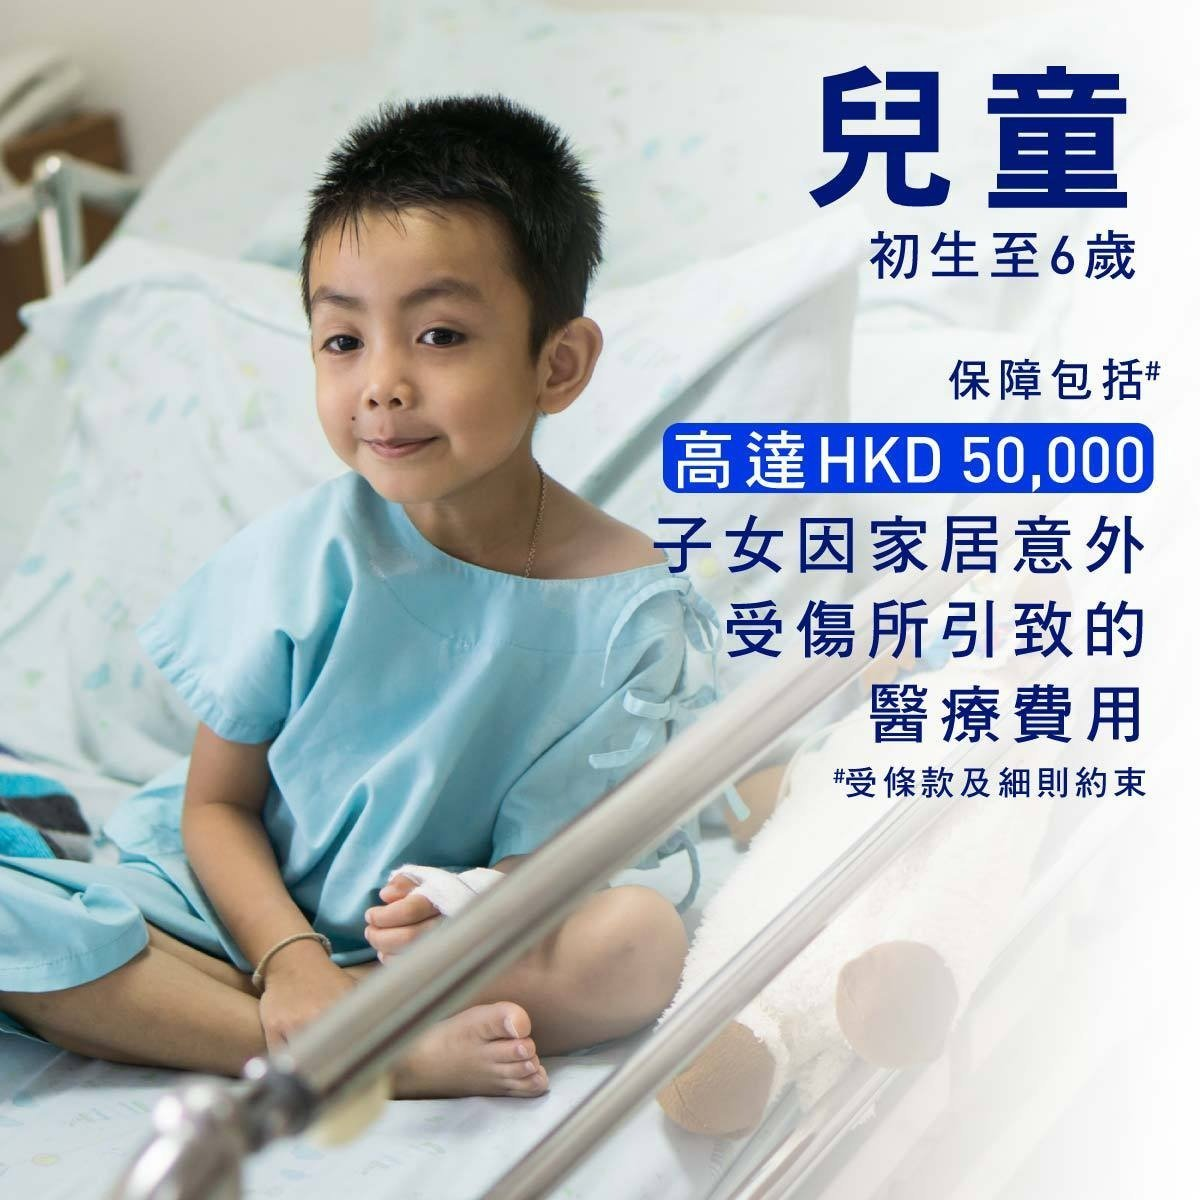 Child Home Accident Protection - New-born to 6 years old